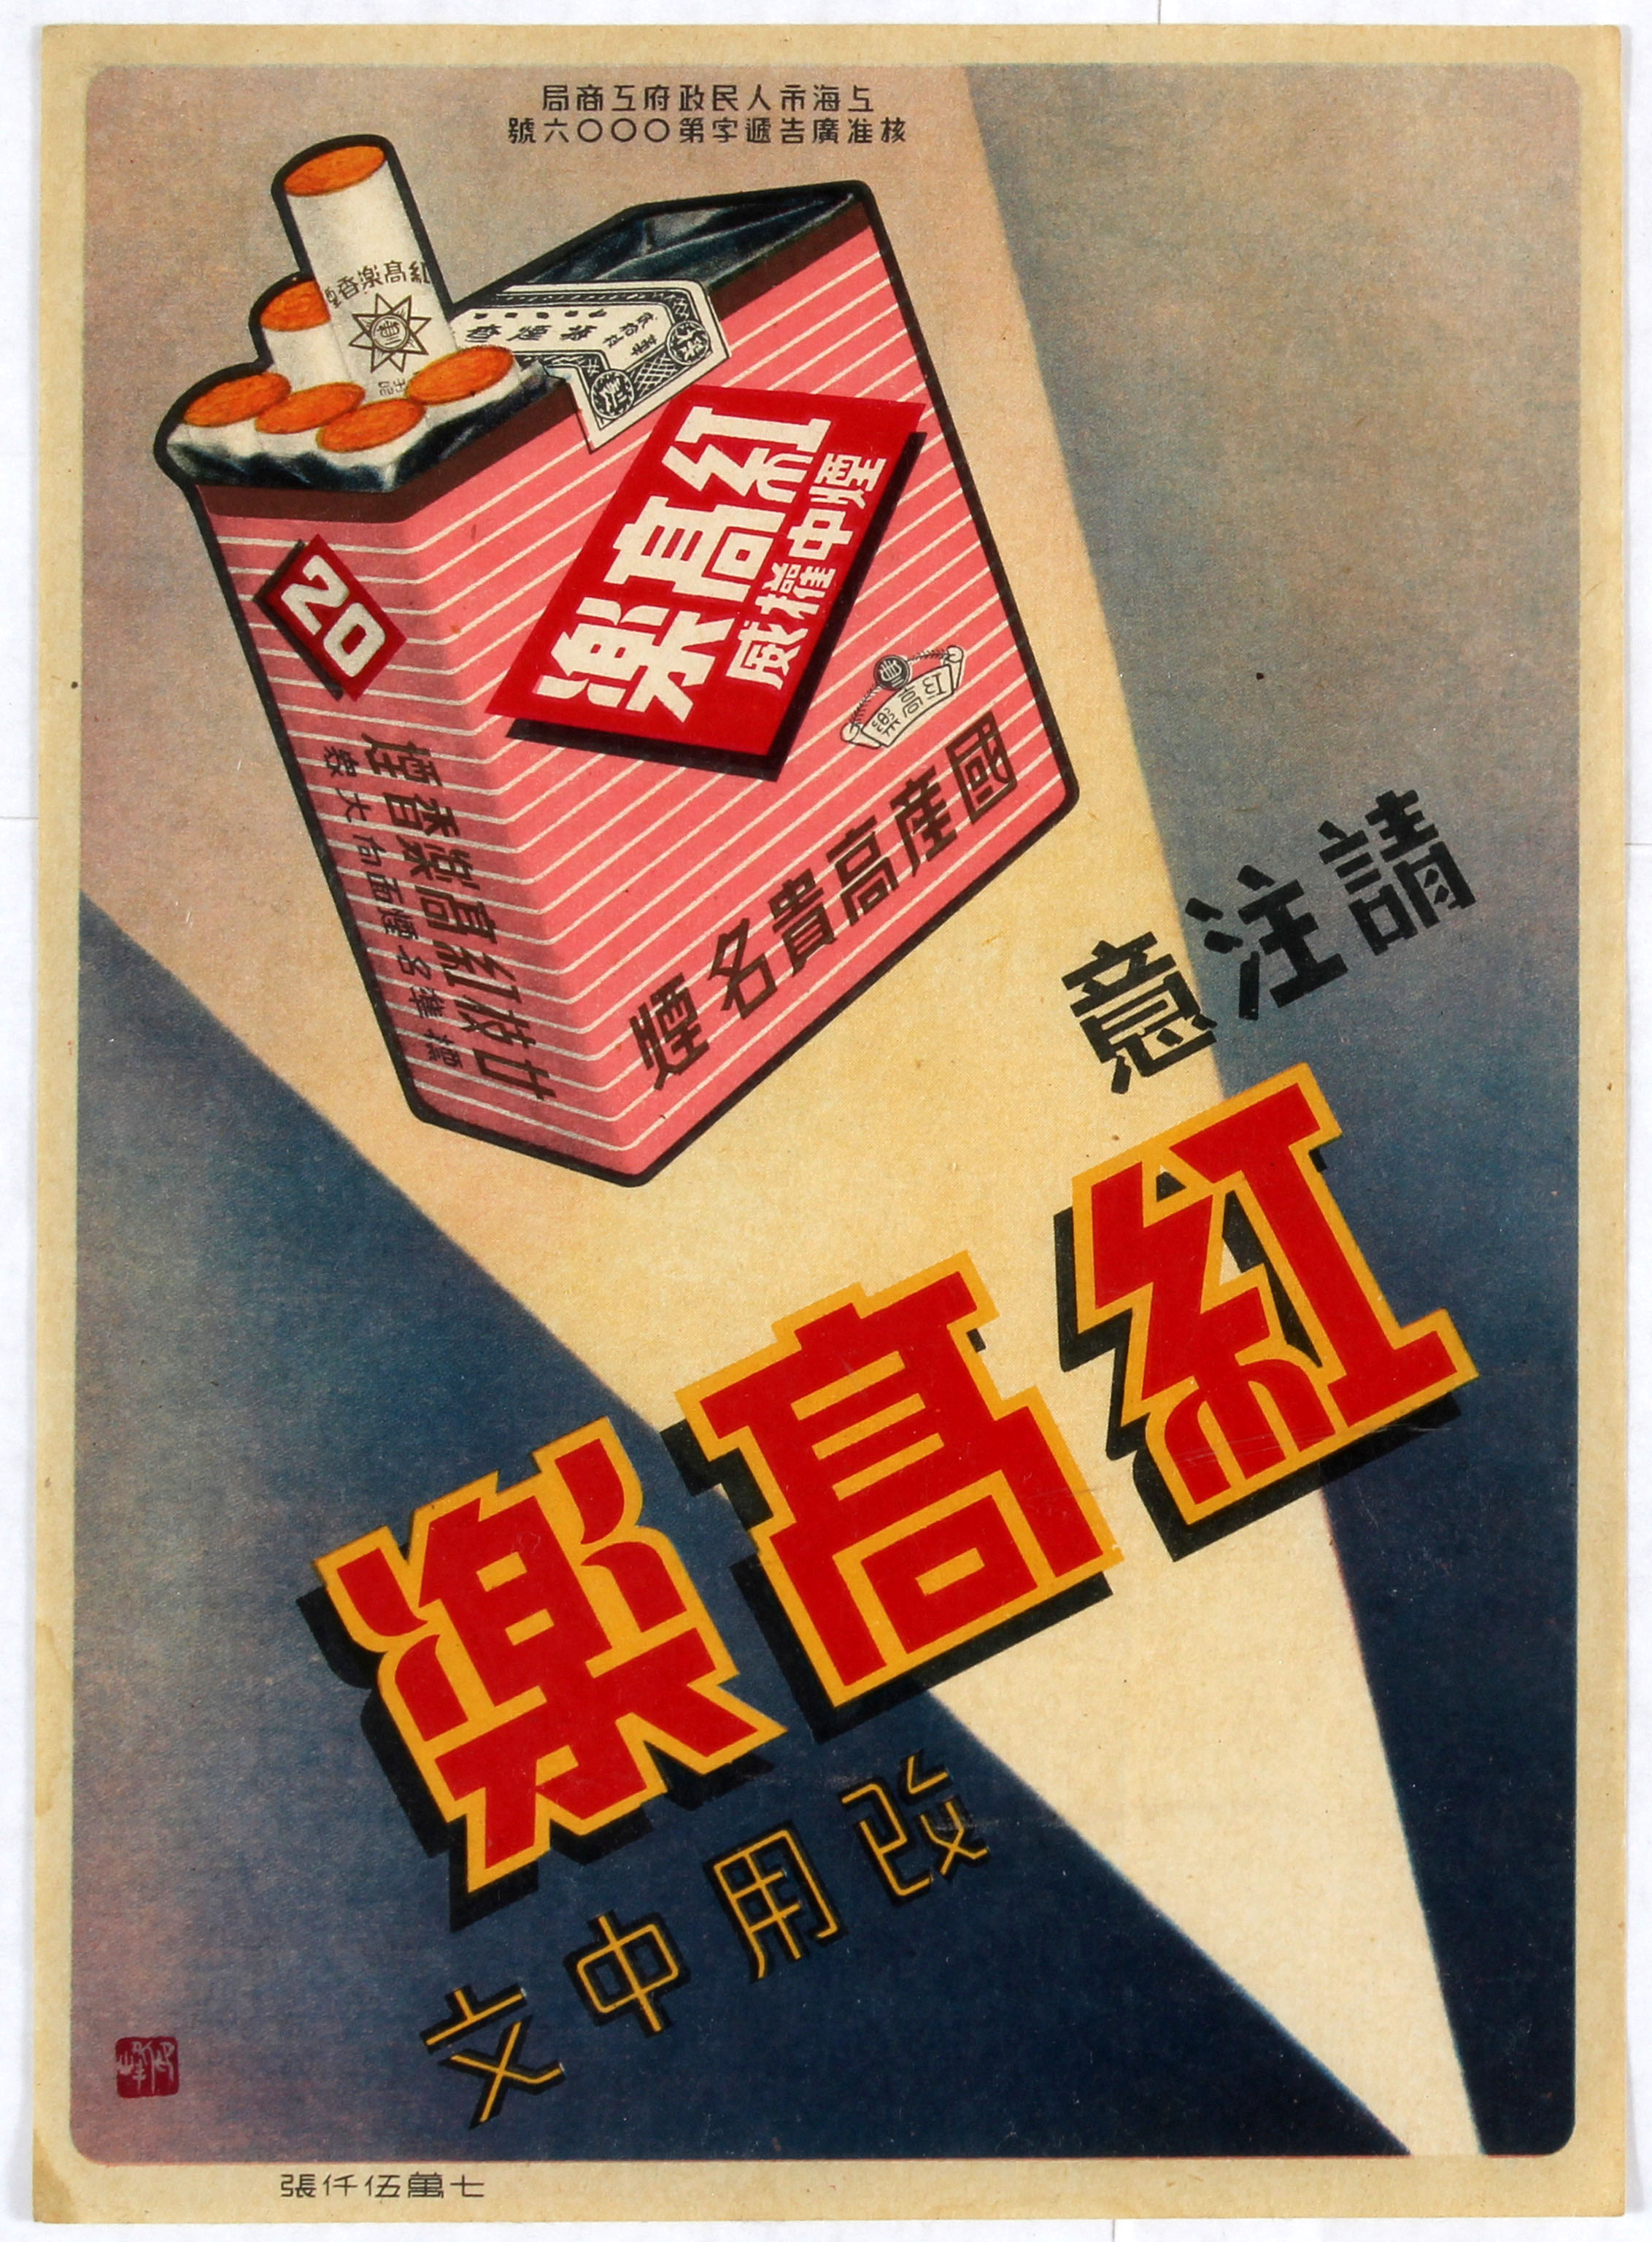 Lot 1203 - Advertising Poster for Chinese cigarettes Beam of Light